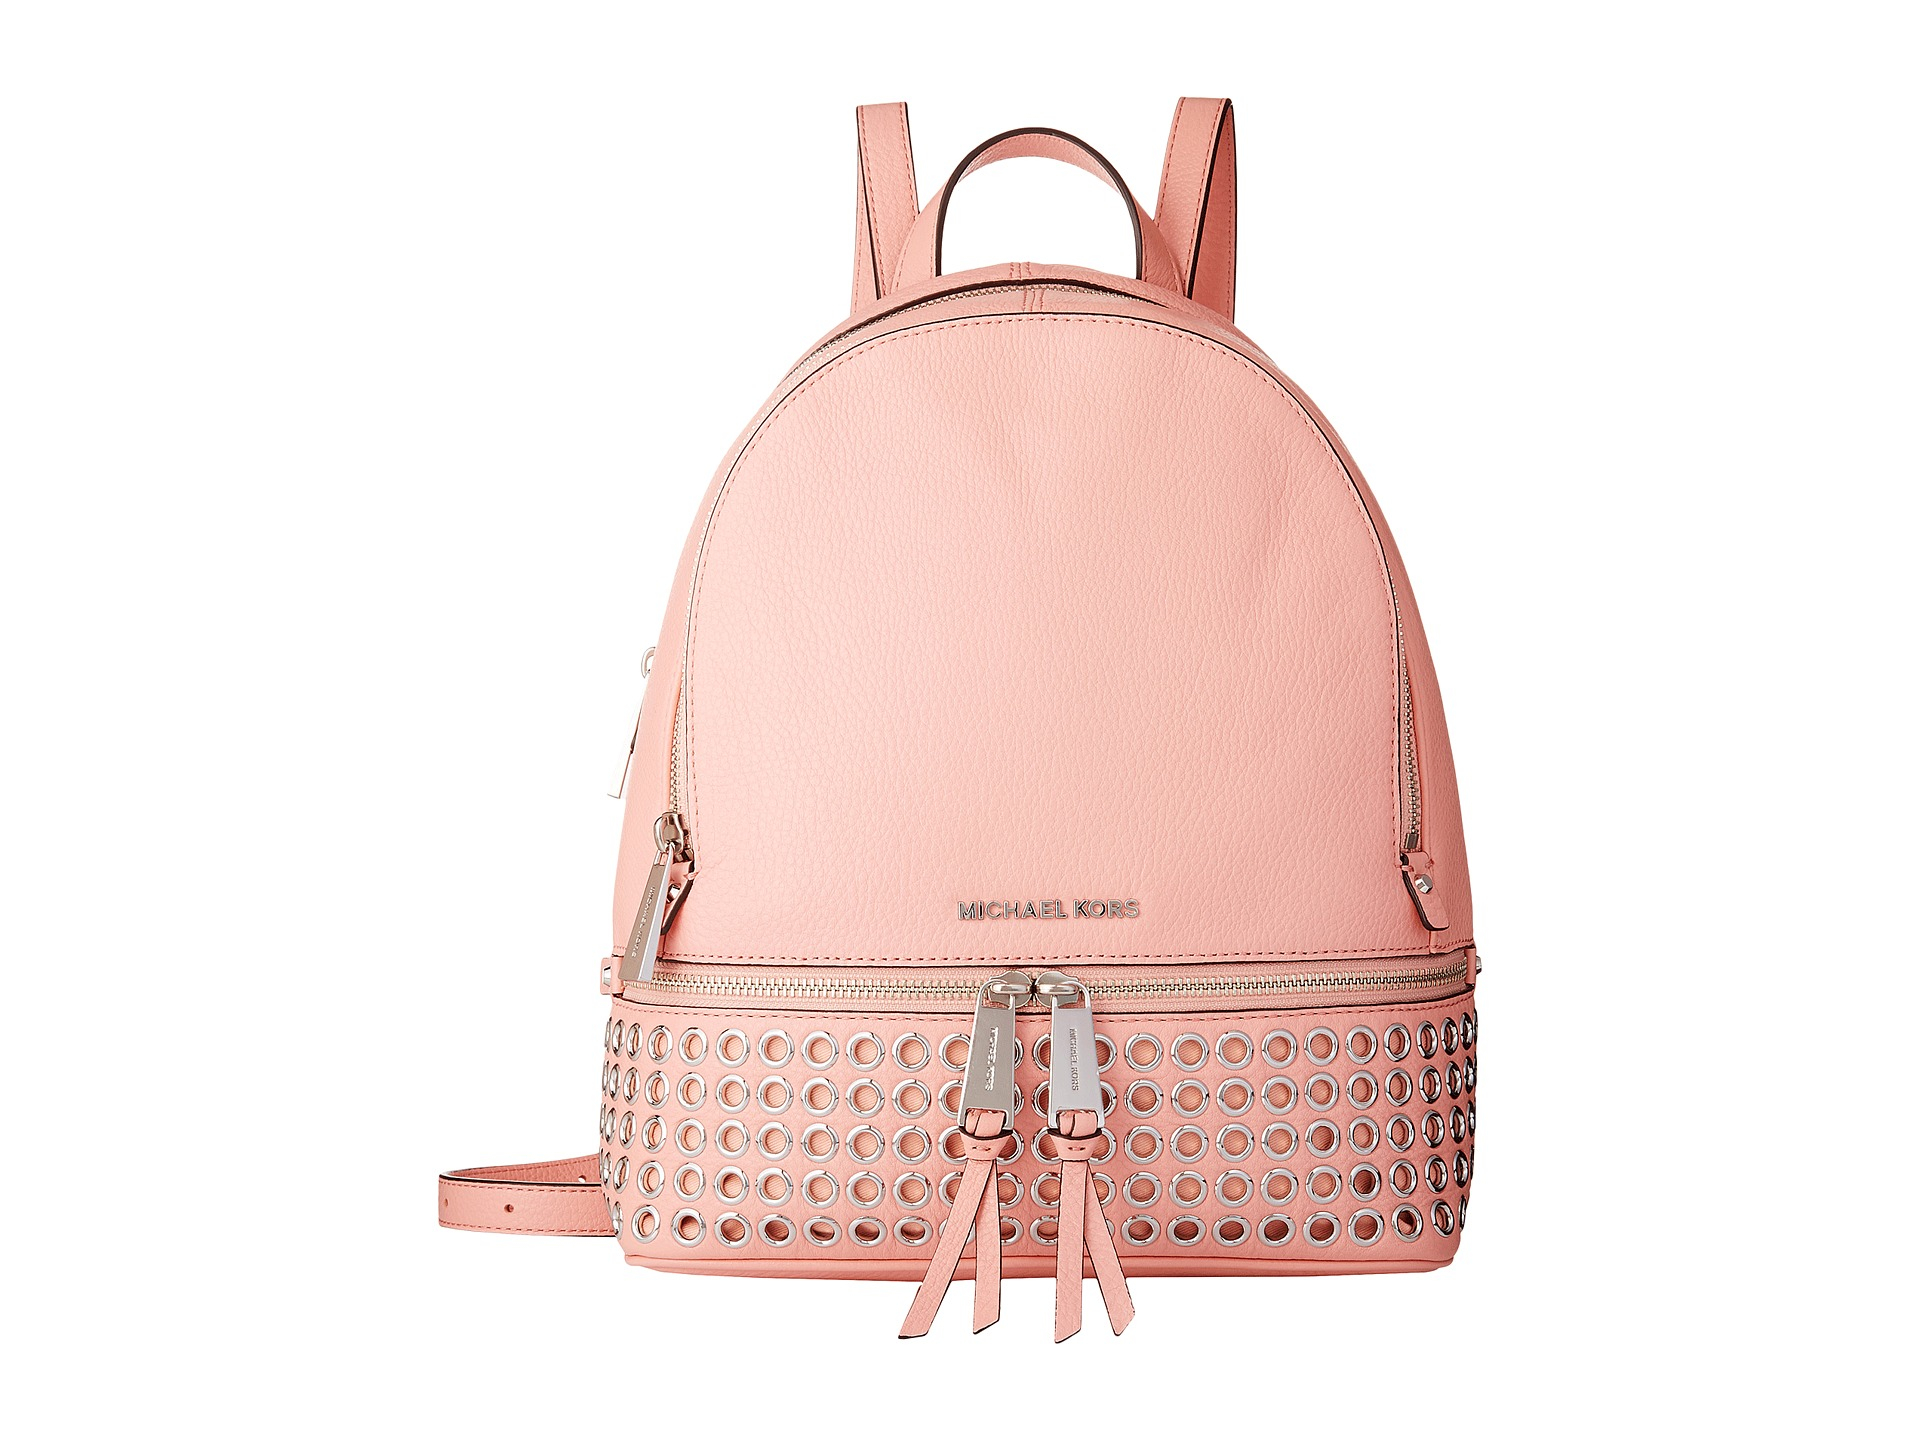 Michael michael kors - Studded Backpack - Women - Leather - One ...